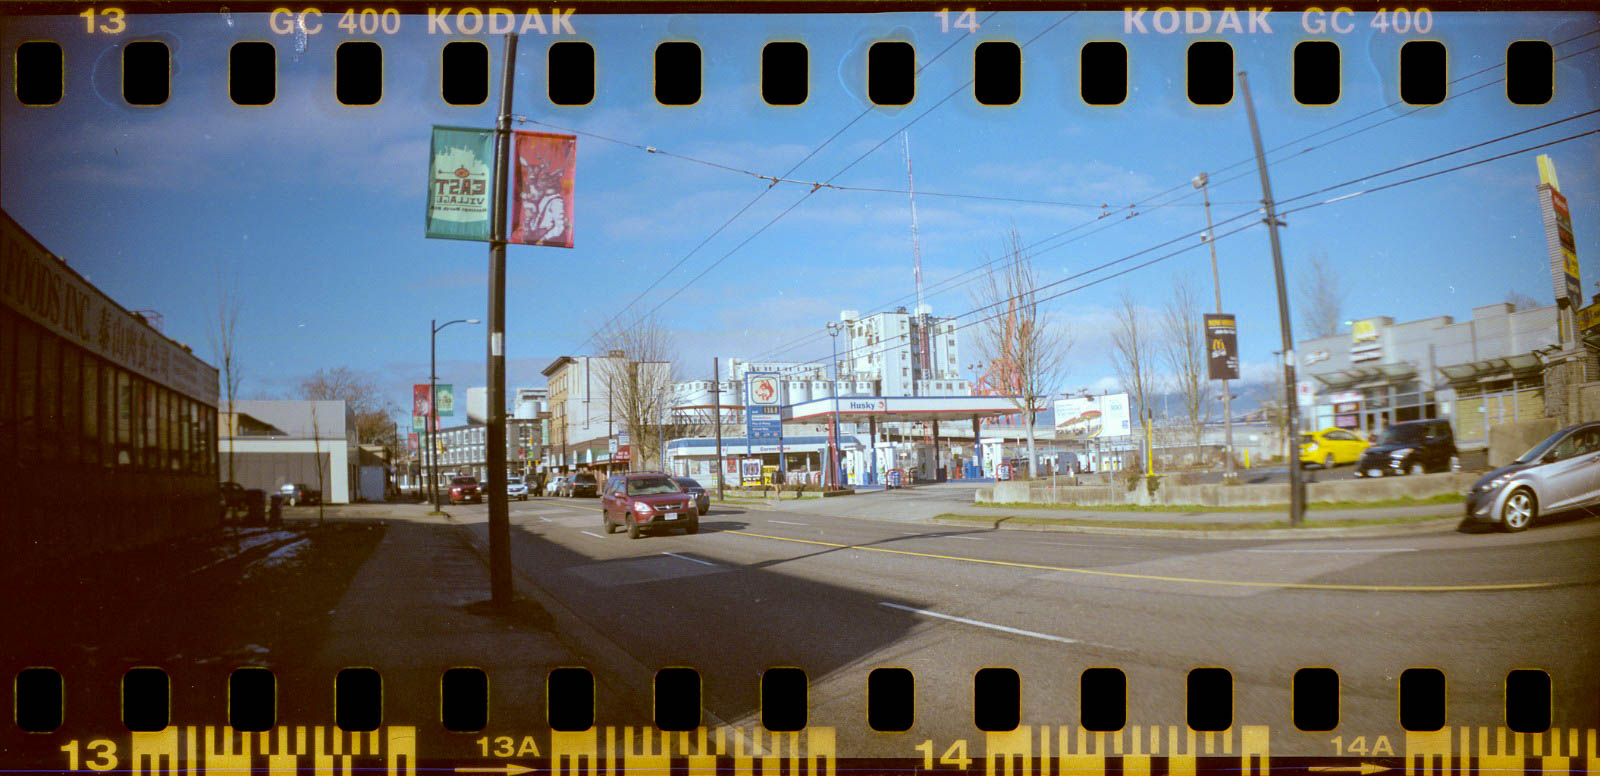 sprocket_eastvan_05.jpg